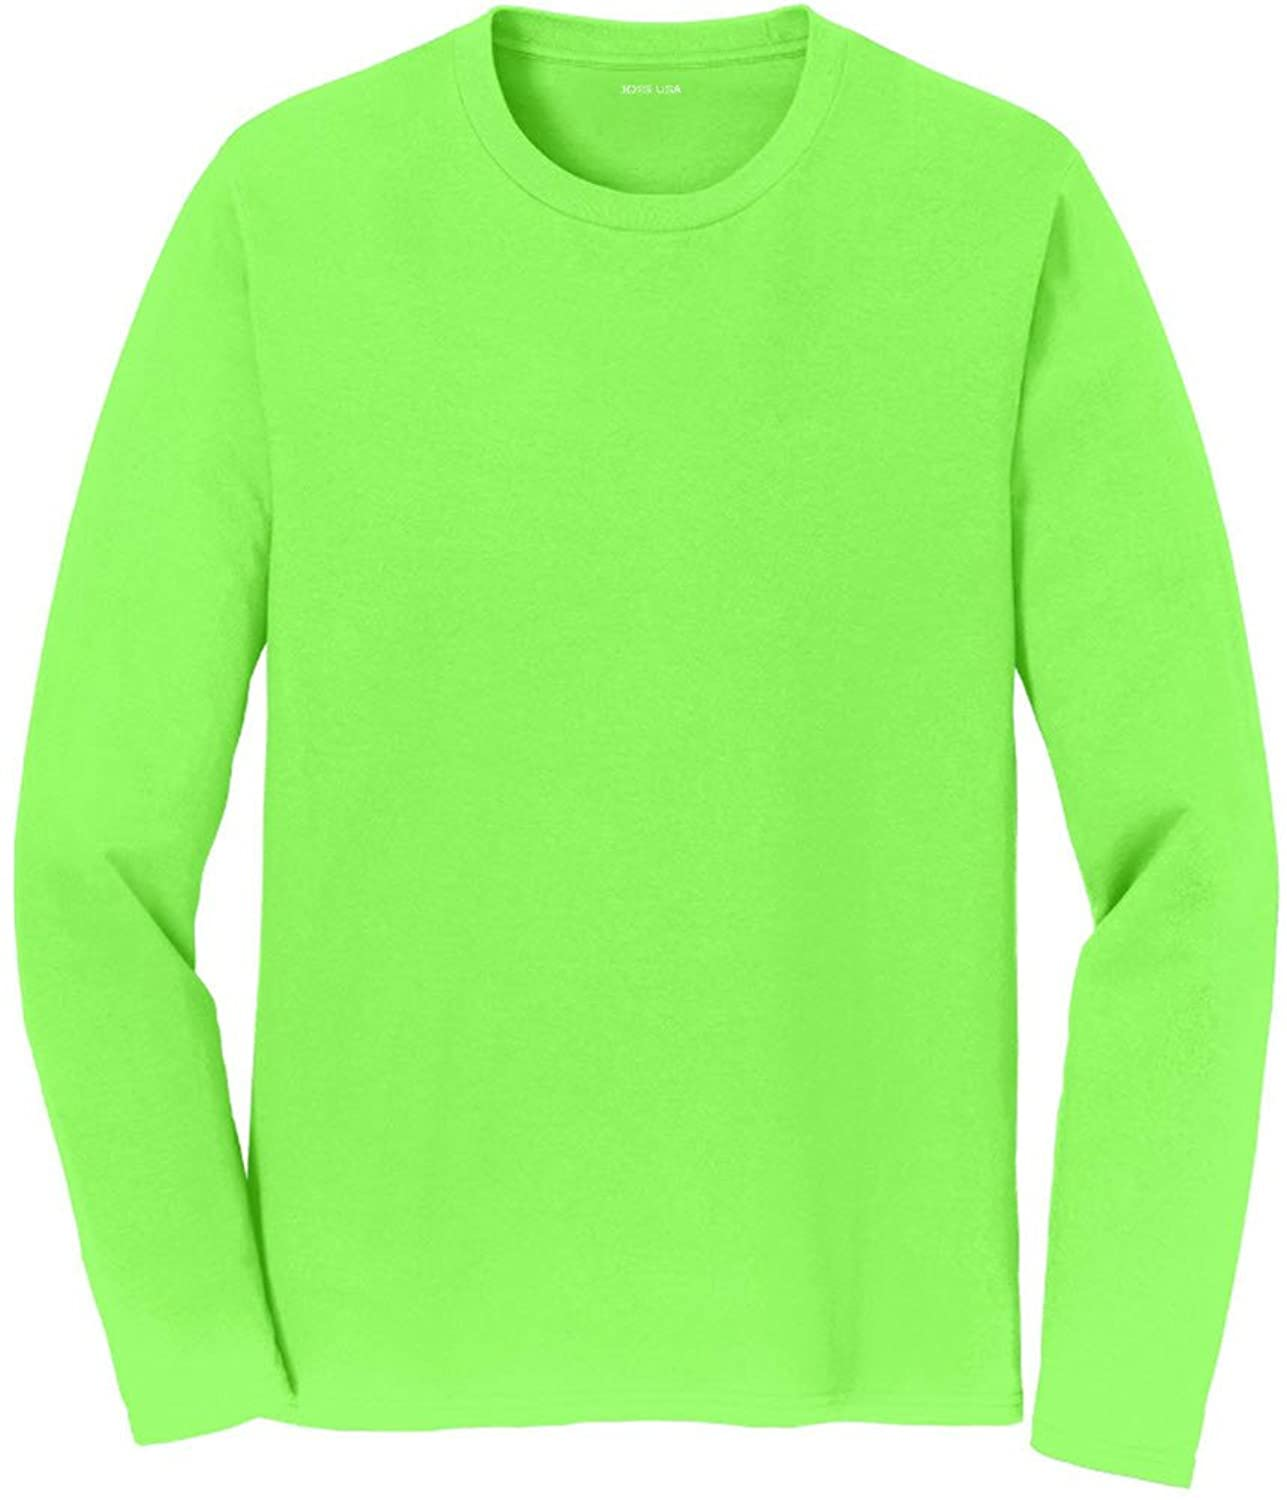 1084b4d808a Joe s USA(tm) Mens Long Sleeve 4.5oz Lightweight Soft Cotton T-Shirt with  short sleeves and designed with superior ring-spun cotton for comfort.